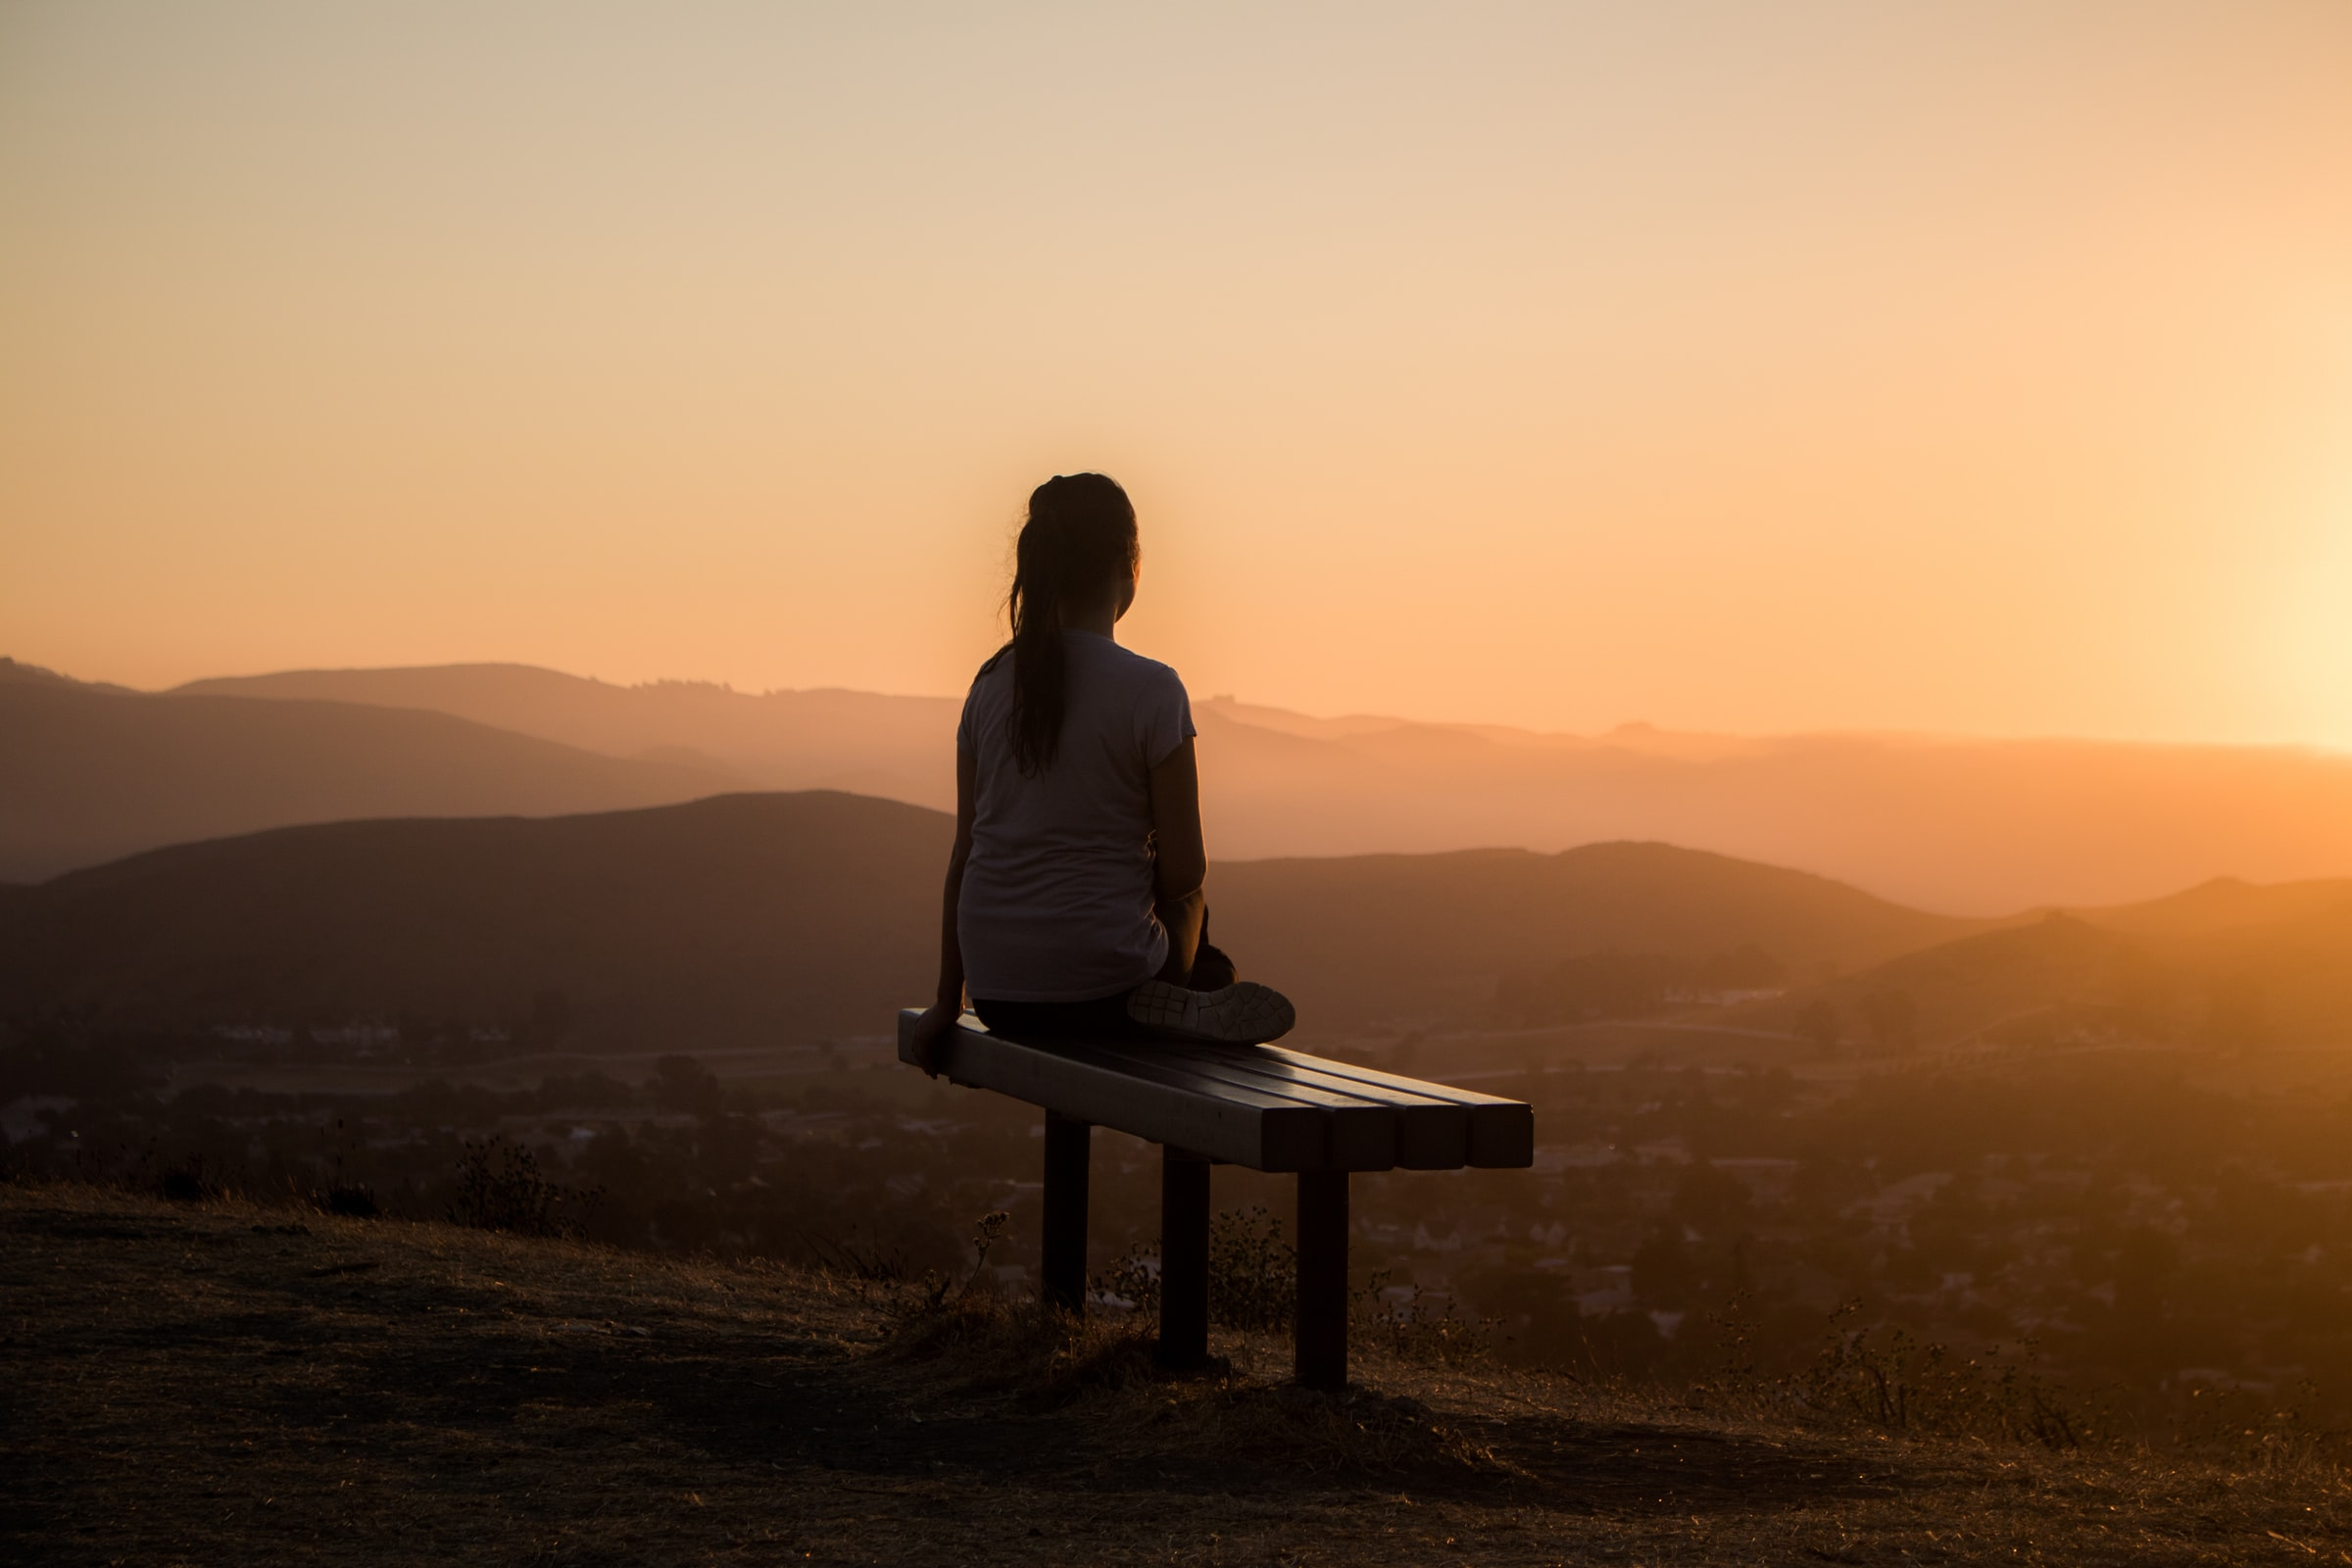 A person sitting on a bench looking down at mountains at sunset